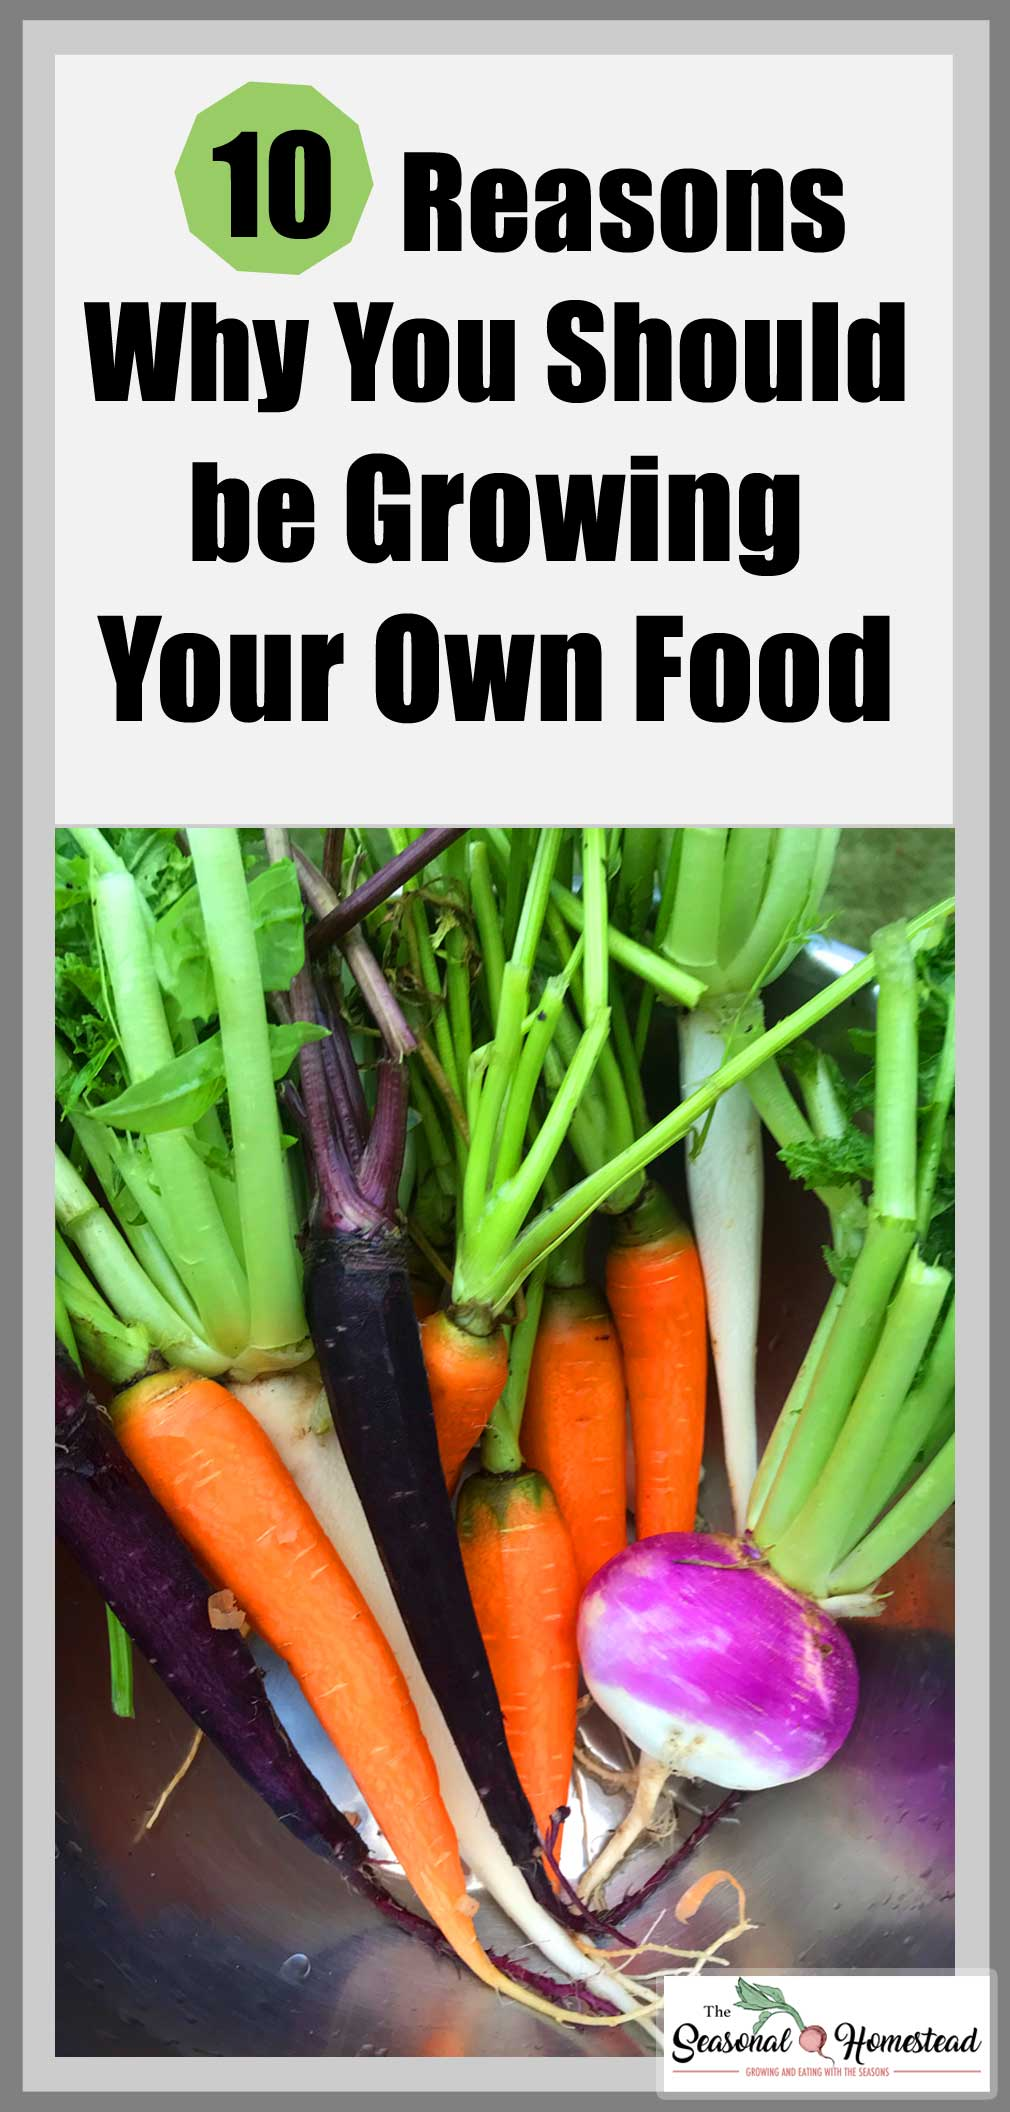 10-Reasons-Why-You-Should-Be-Growing-Your-Own-Food.jpg